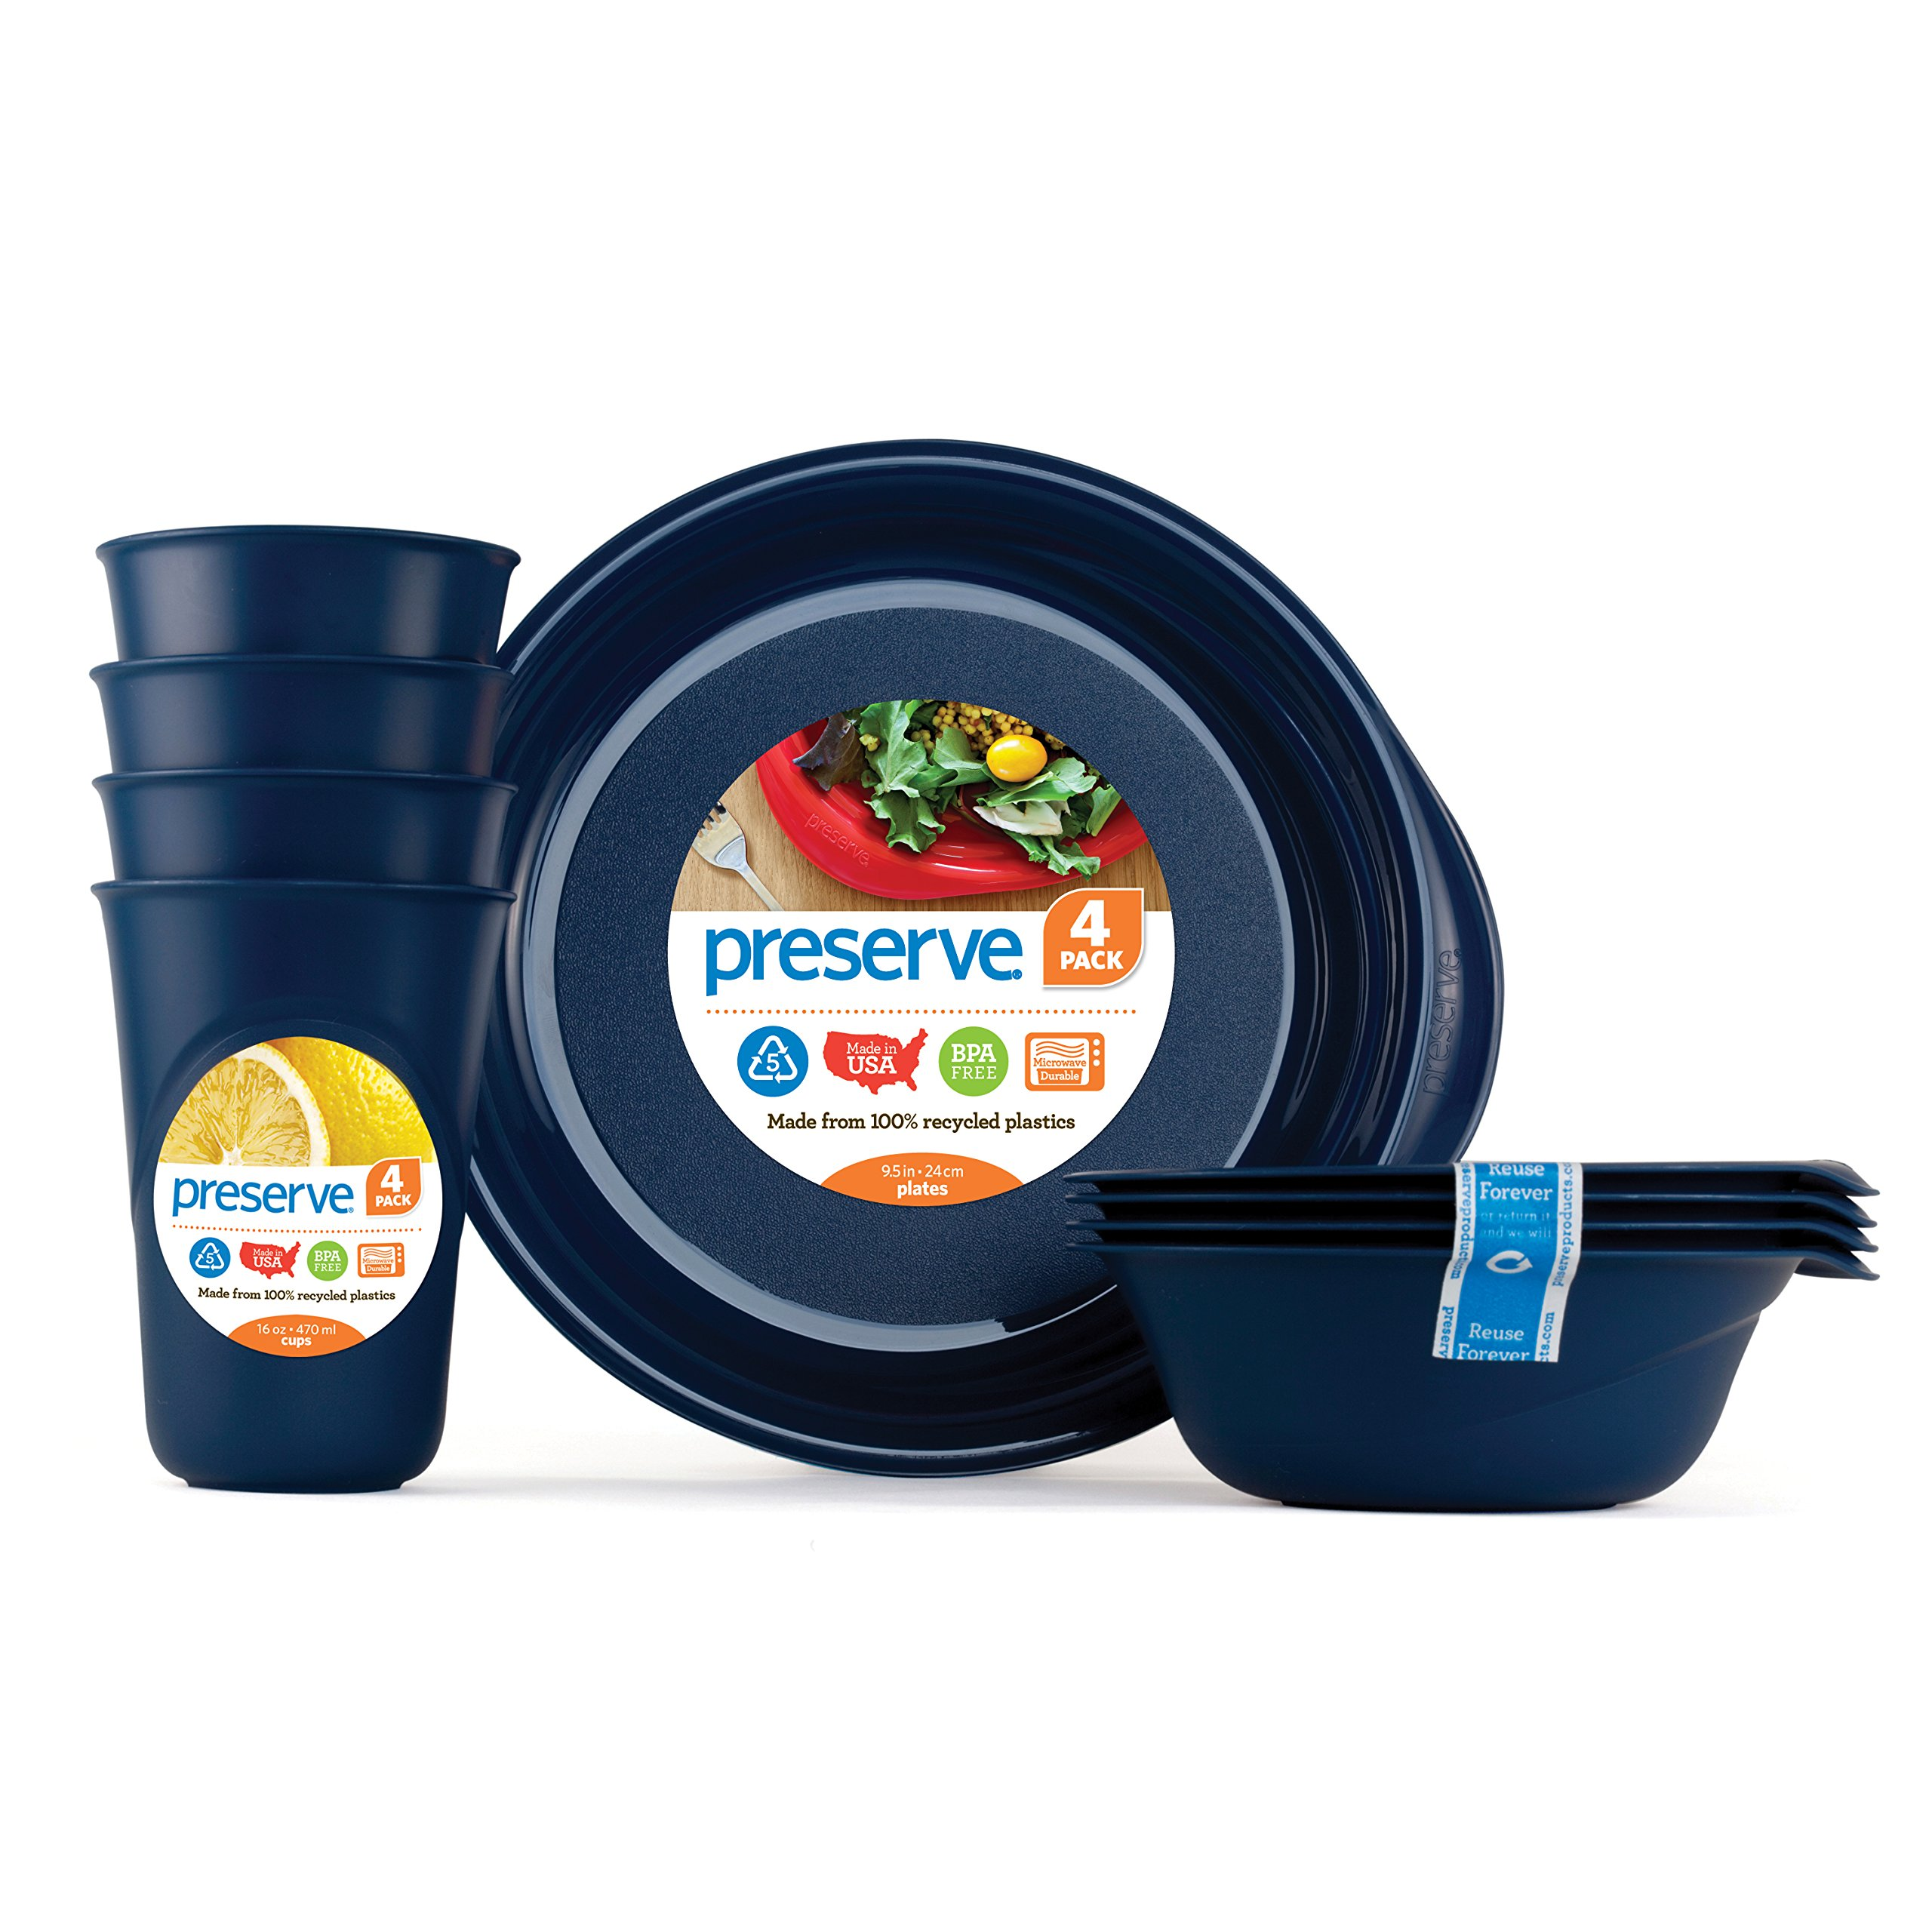 Preserve Everyday Tableware Set: Four Plates, Four Bowls and Four Cups, Midnight Blue by Preserve